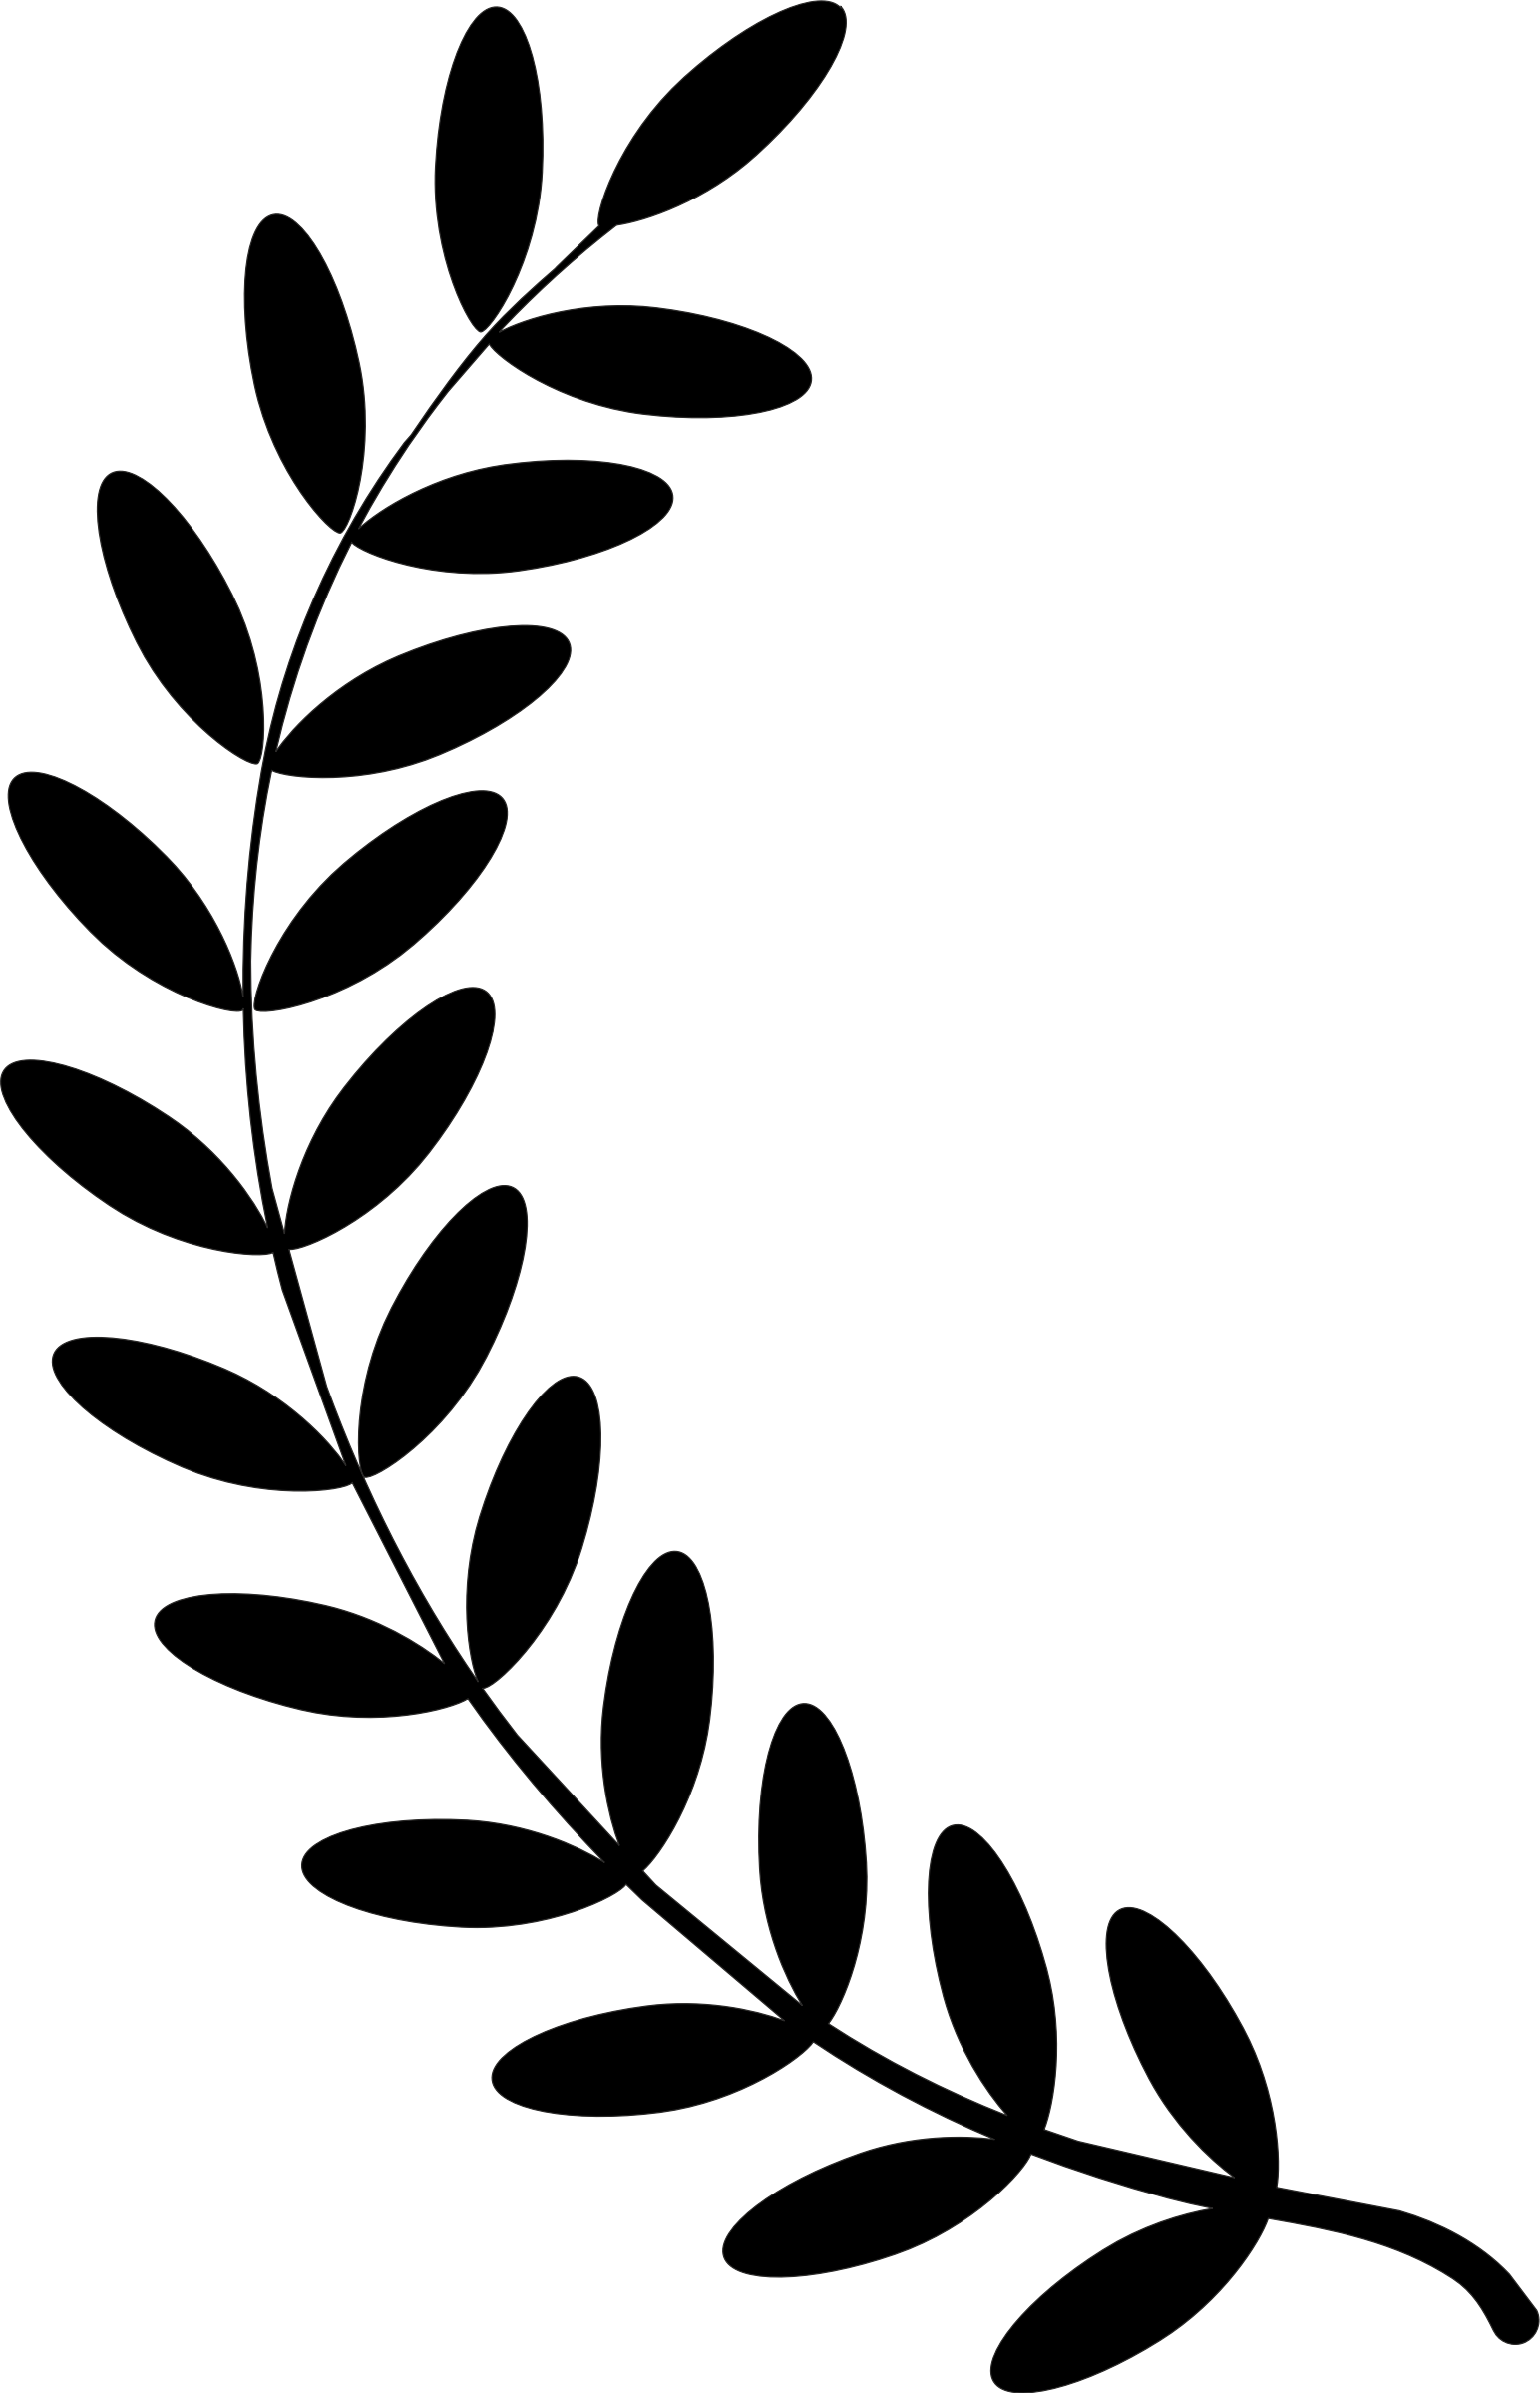 olive branch silhouette at getdrawings com free for personal use olive branch silhouette of free dove images clip art dove images clip art black and white